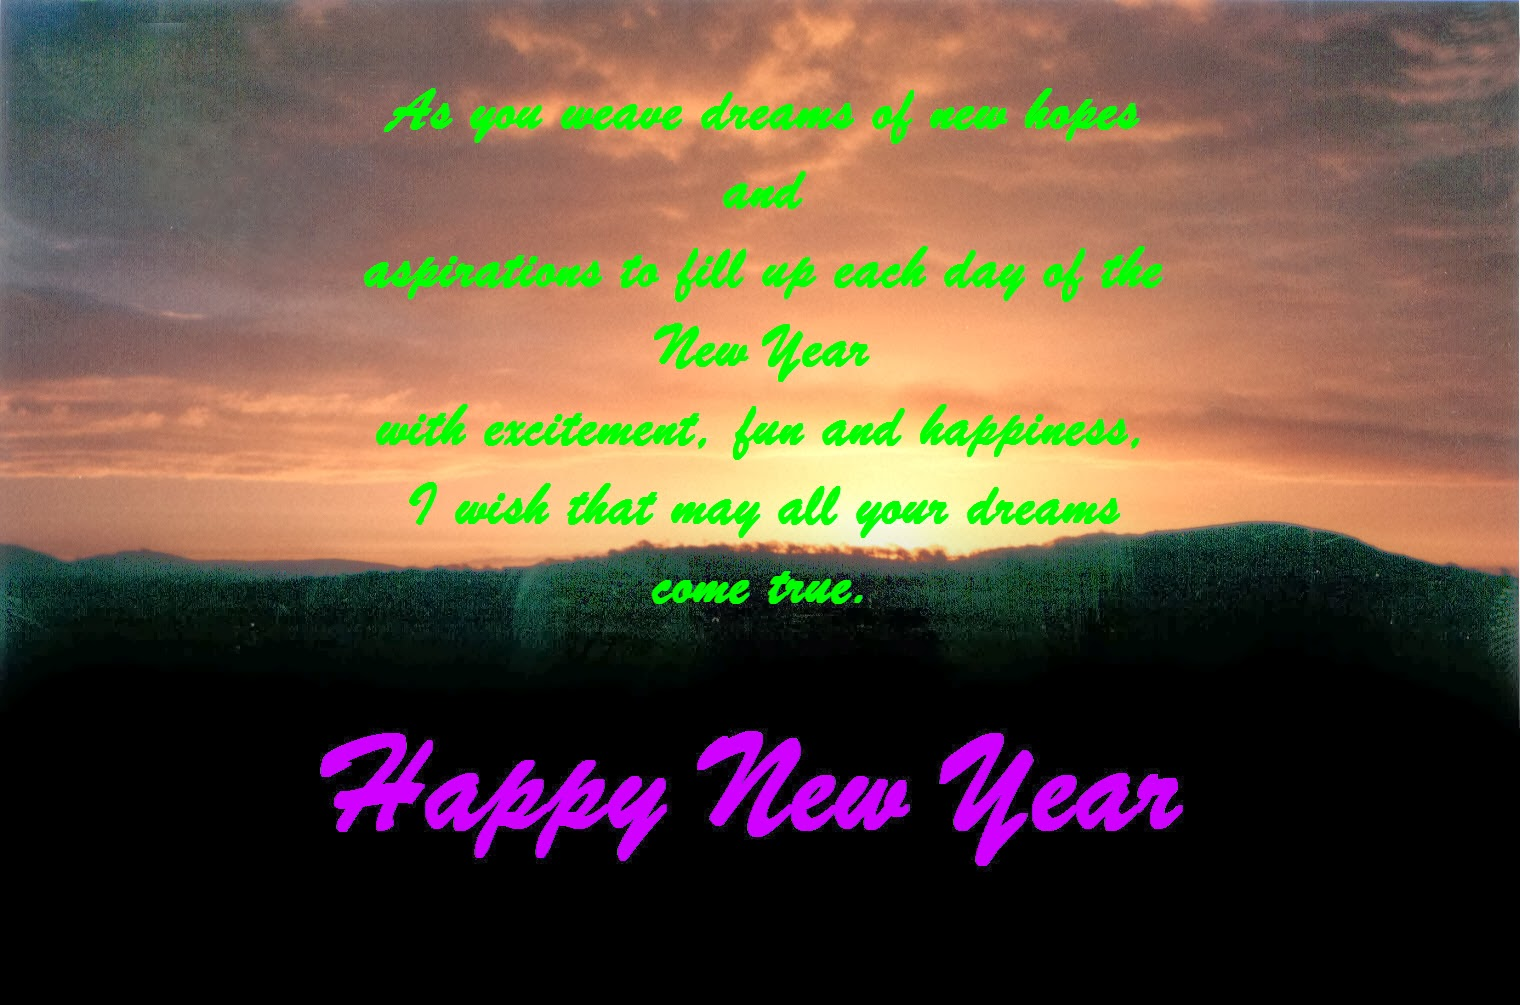 New Year Wishes For Friends 3 Best New Year Wishes